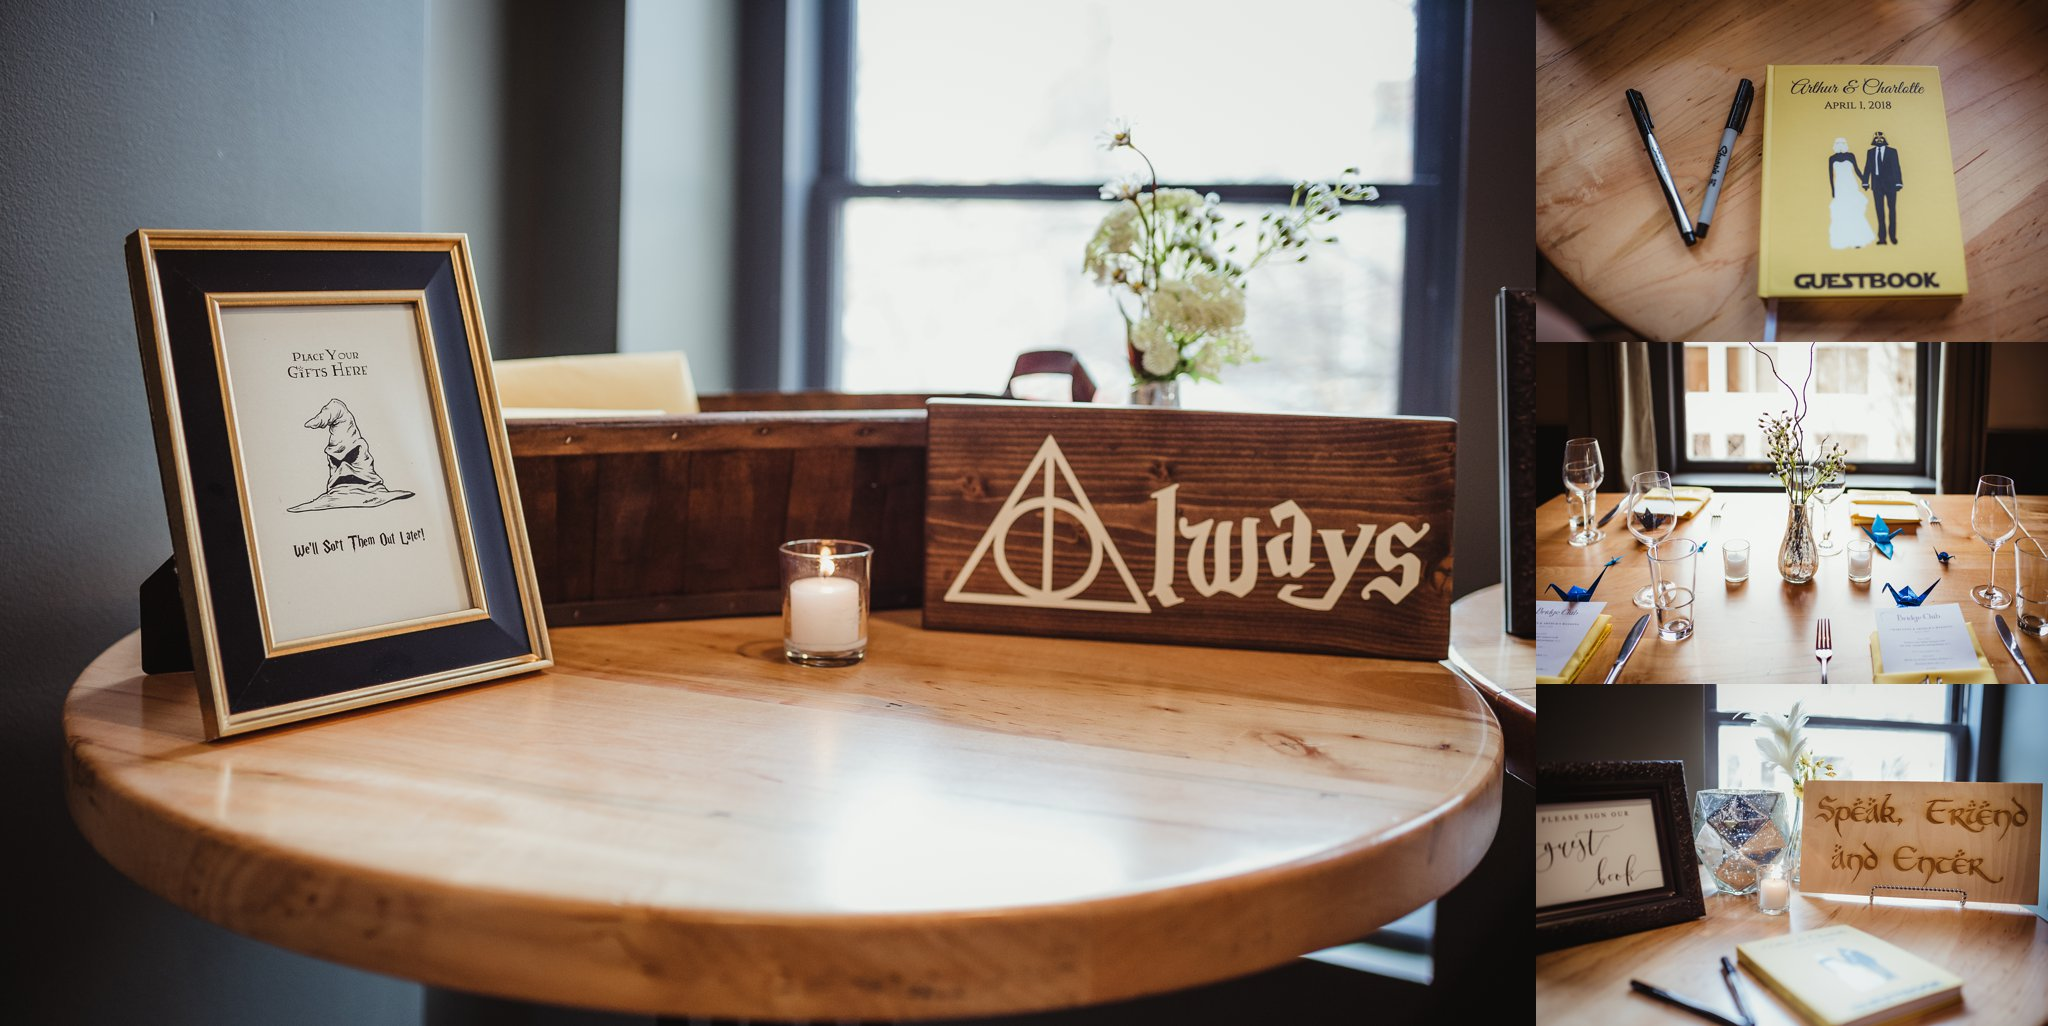 Wedding details featuring Harry Potter, Star Wars, and Lord of the Rings were everywhere at this Raleigh, NC wedding, pictures by Rose Trail Images.